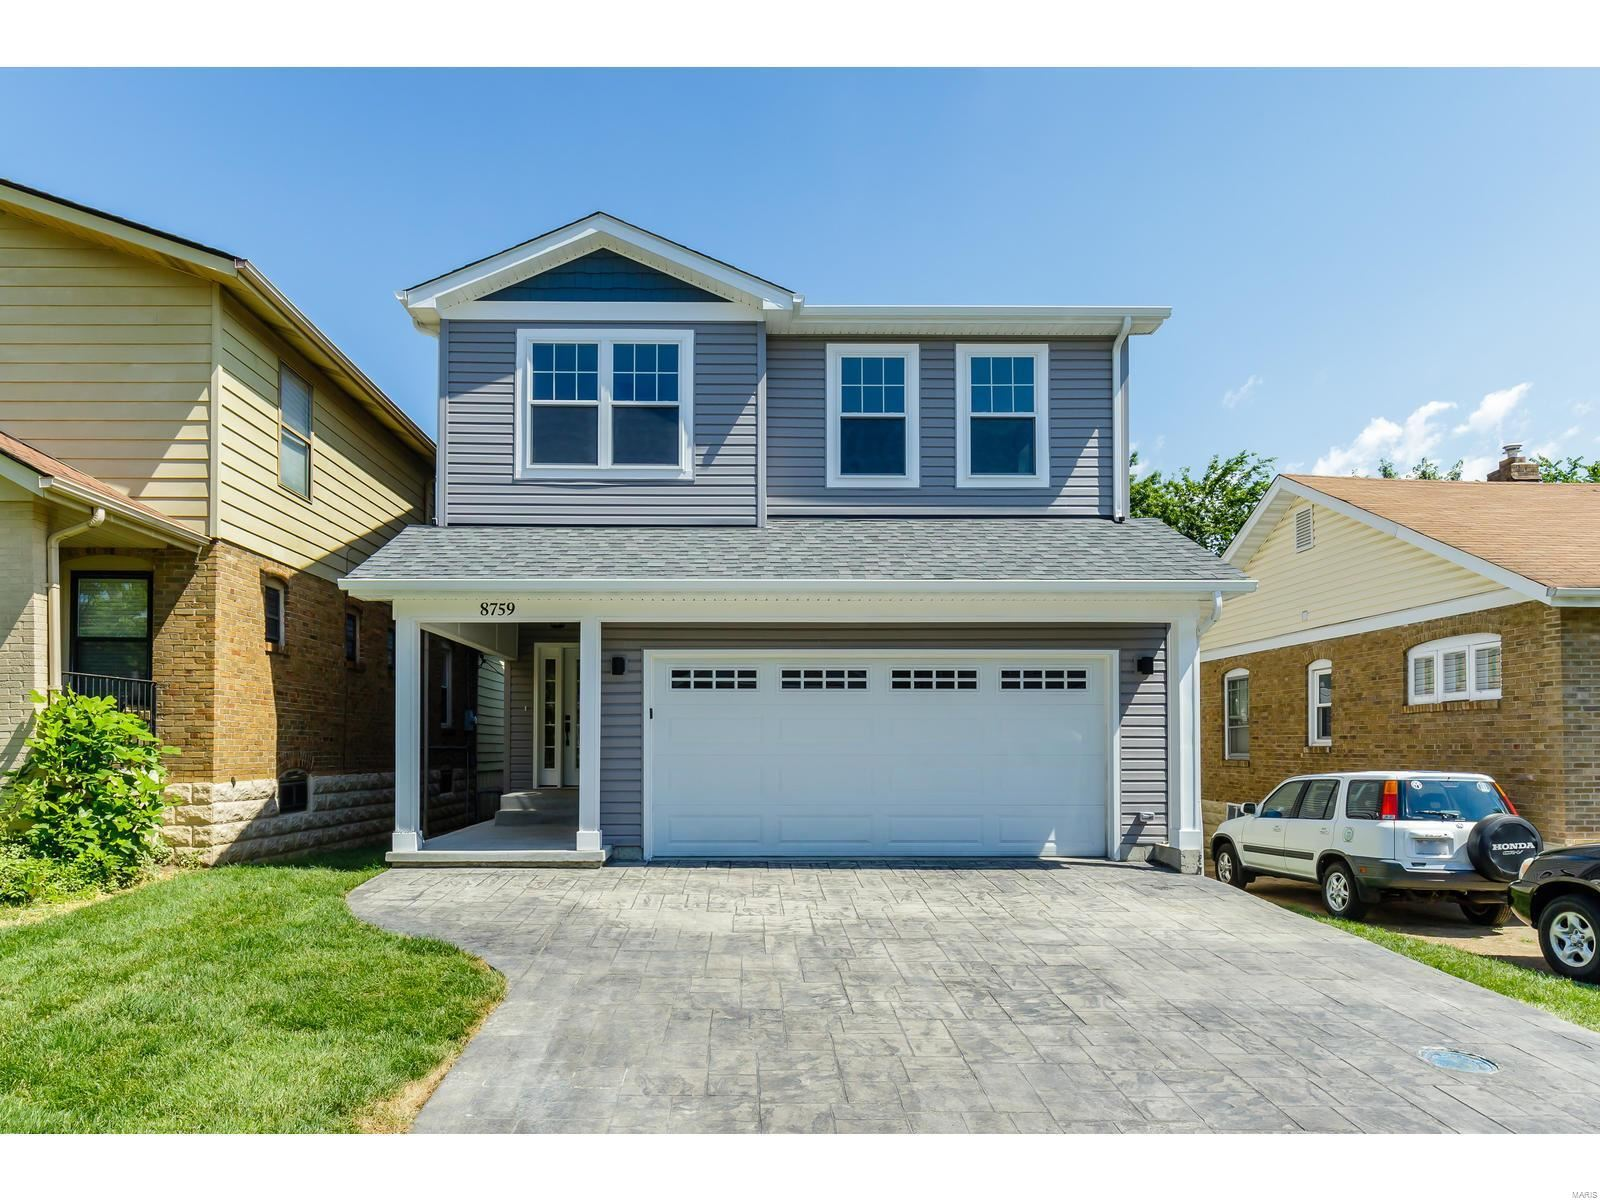 8759 Brentwood Place, Brentwood, MO 63144 - MLS#: 20042546